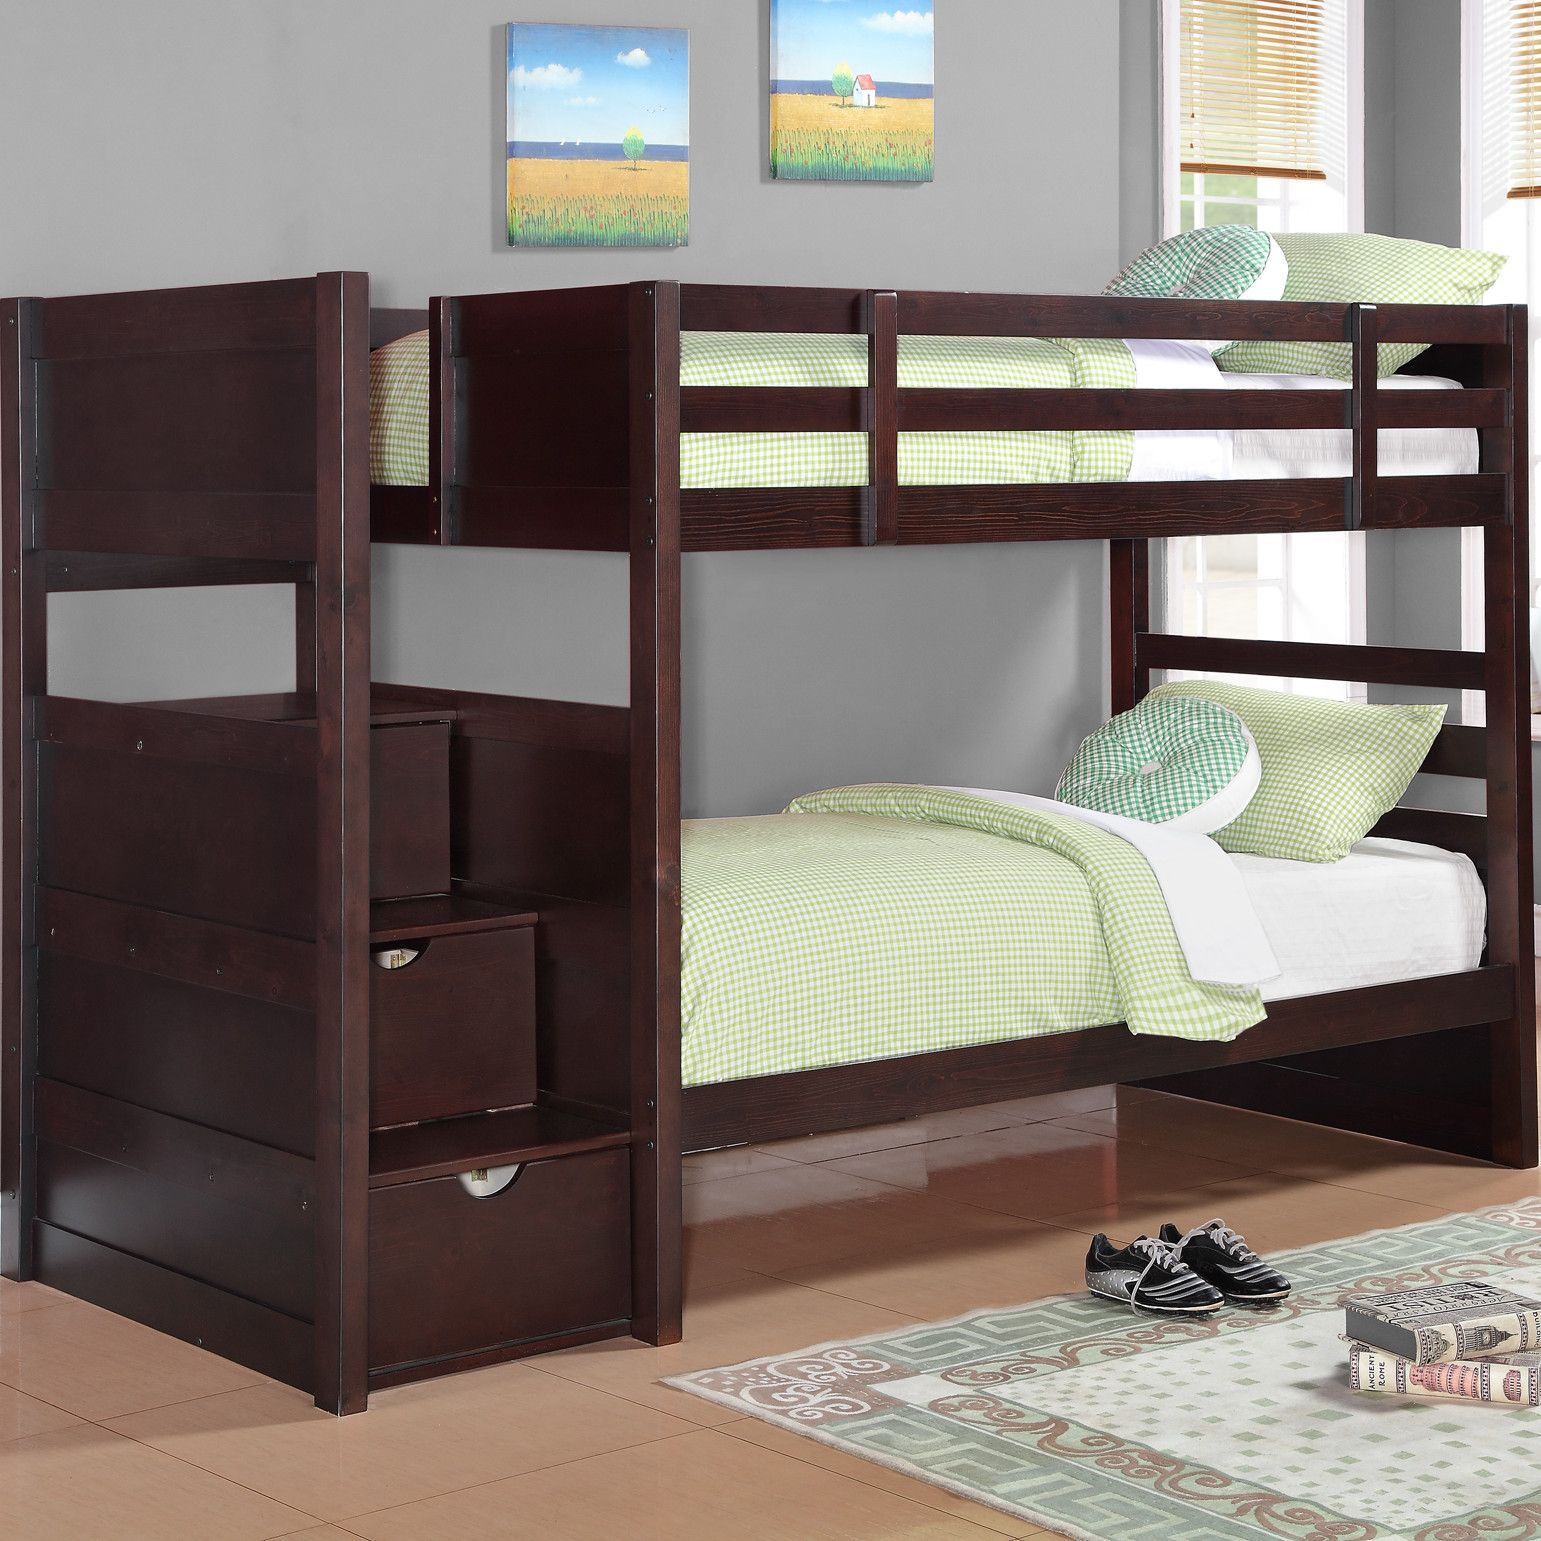 Best 25 Staircase Bunk Bed Ideas On Pinterest Bunk Bed